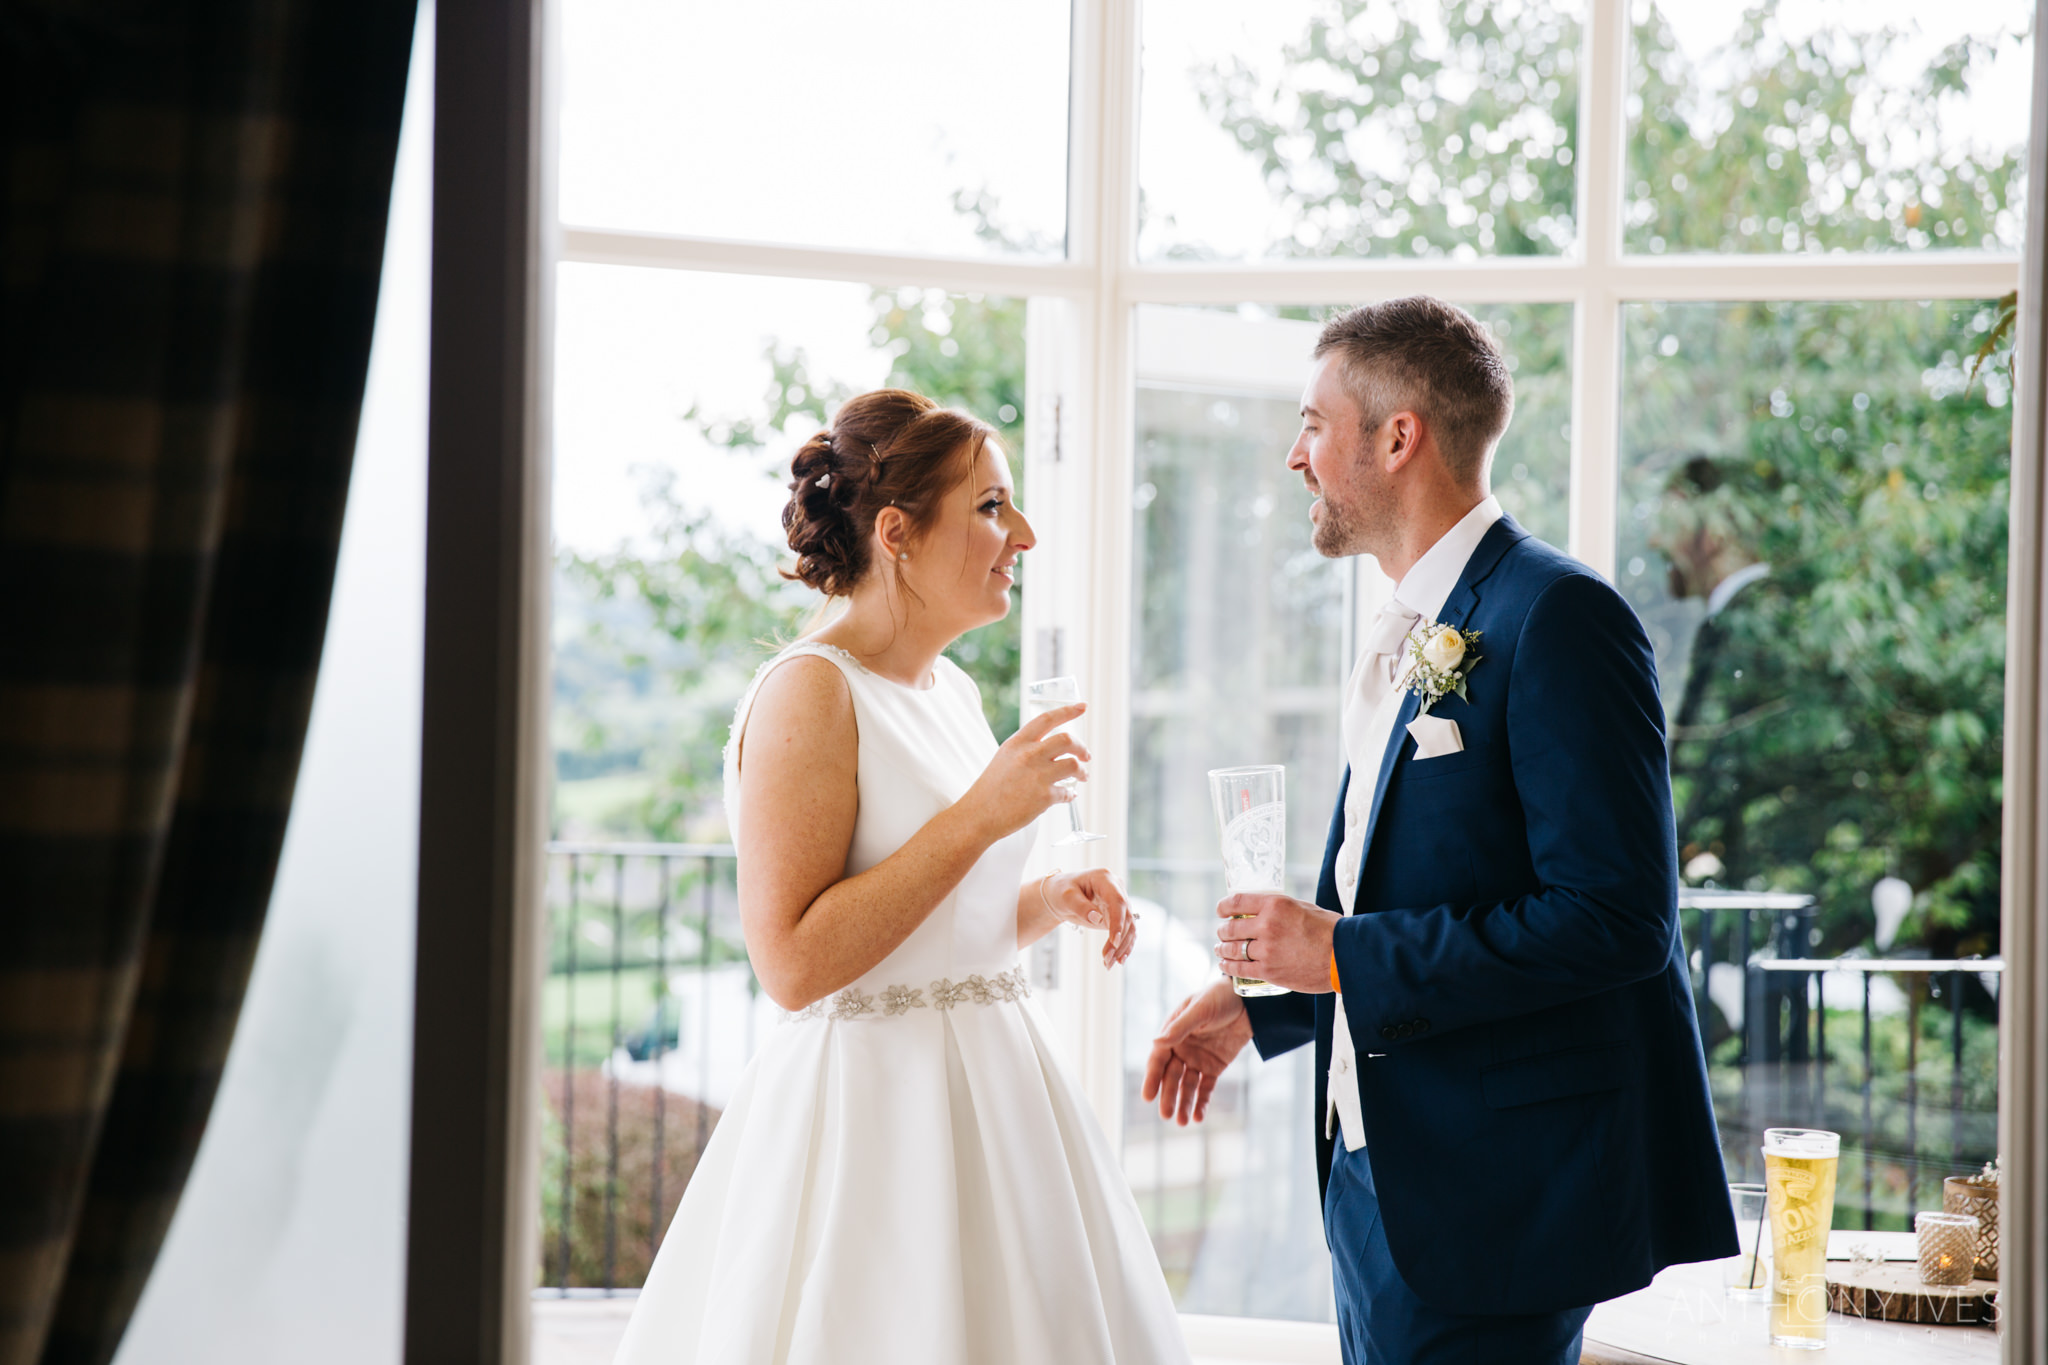 019 Shireburn Arms Preston Wedding Photography.jpg